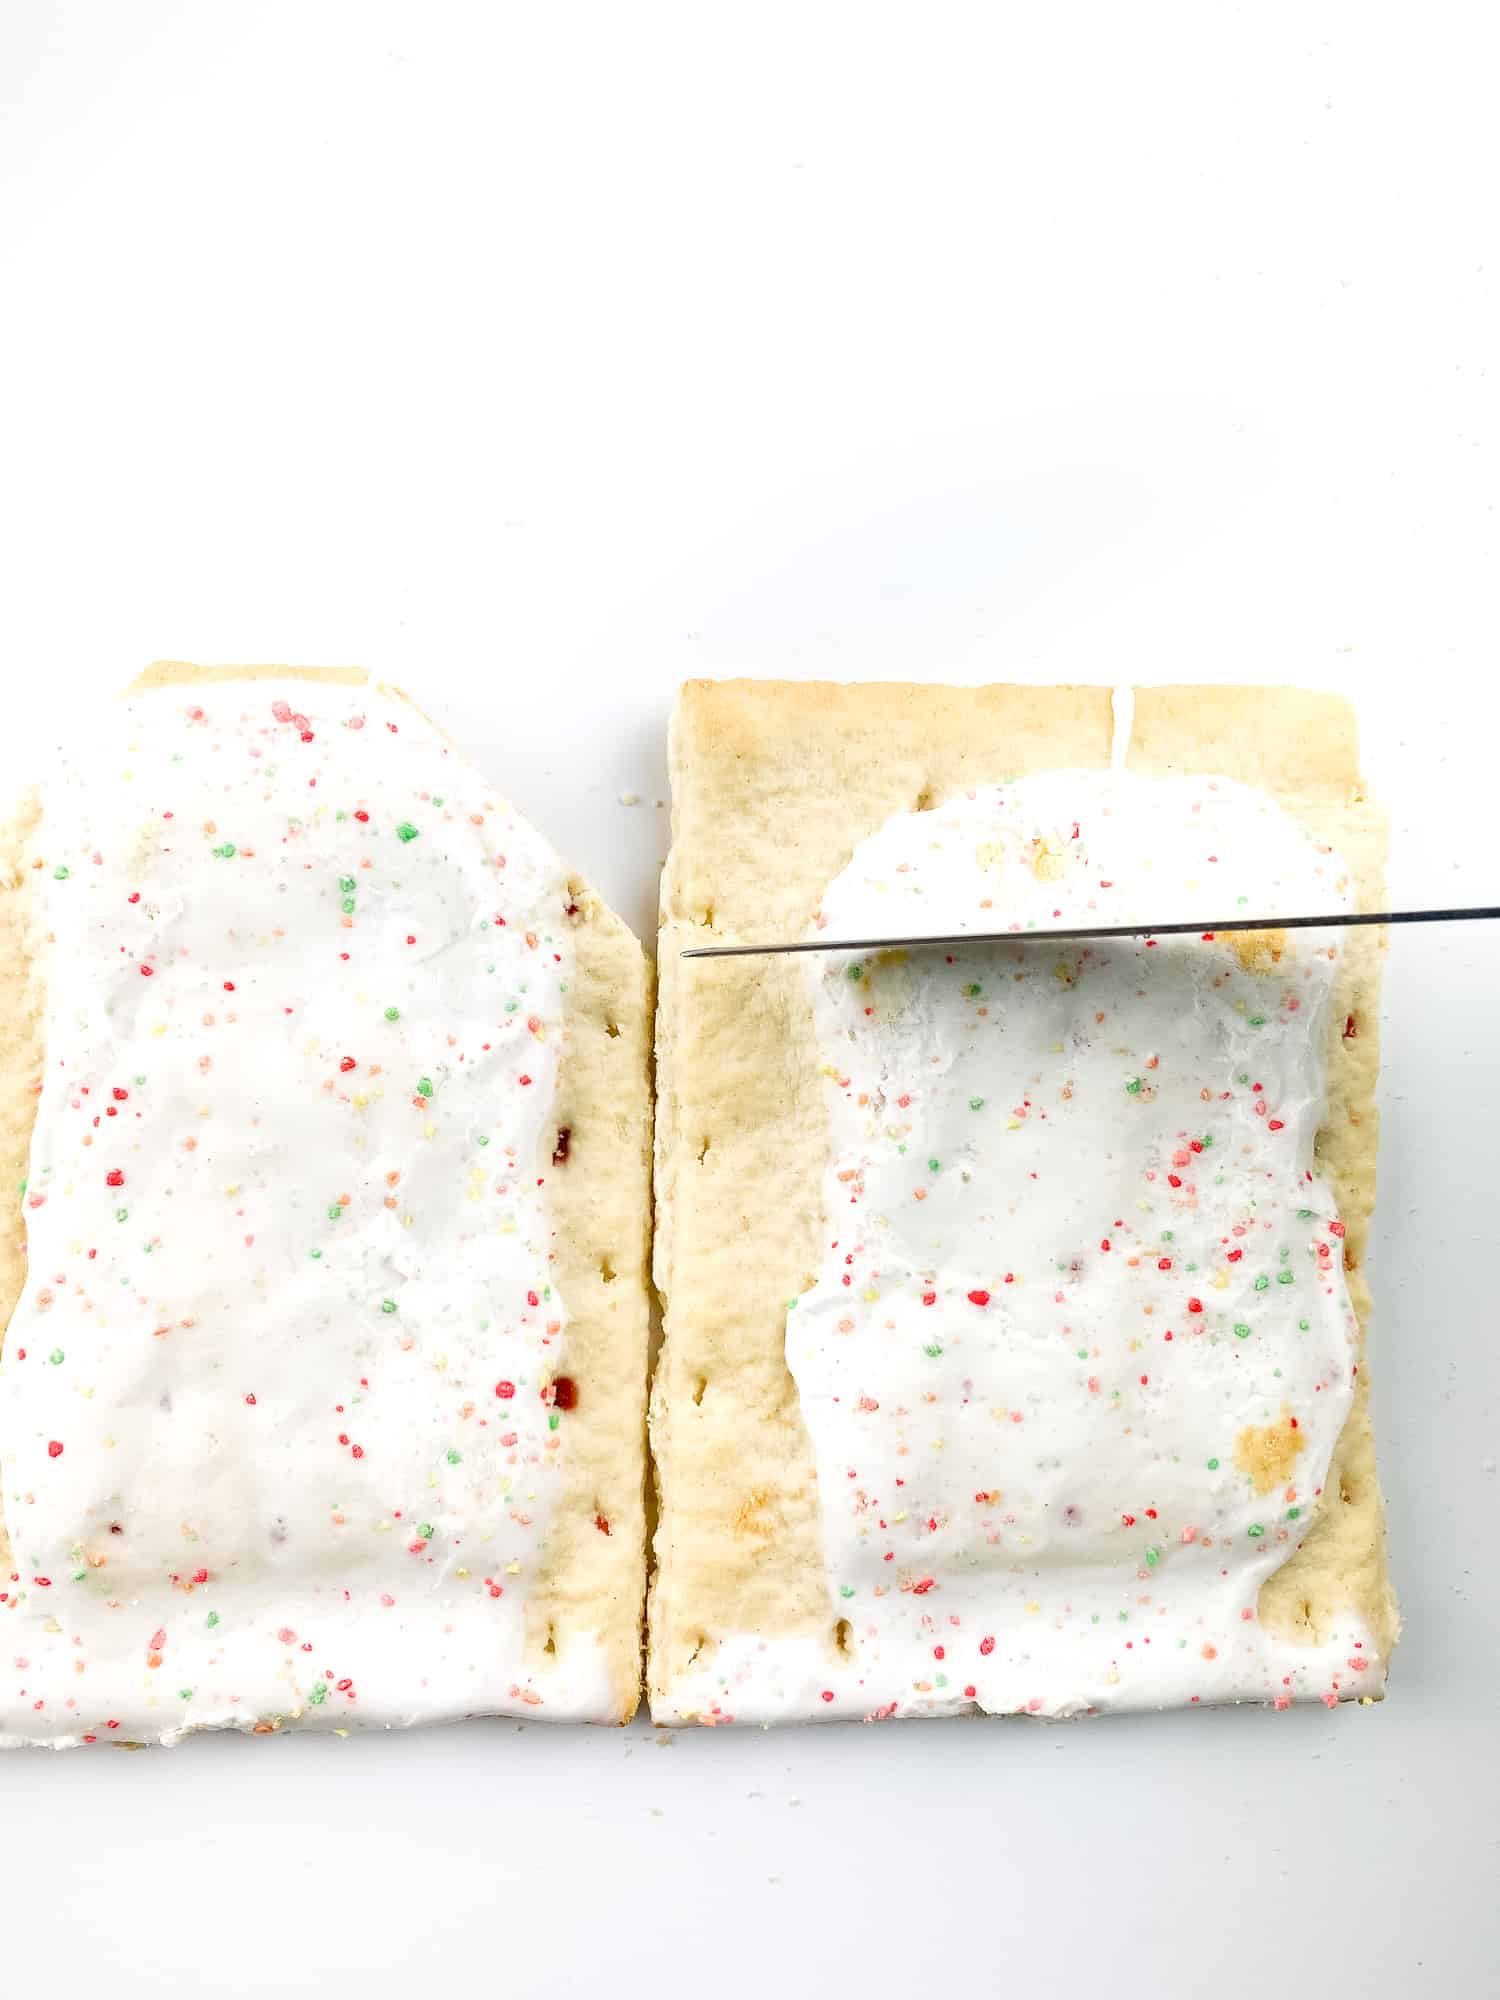 Making walls out of pop-tarts for the no-bake gingerbread house.